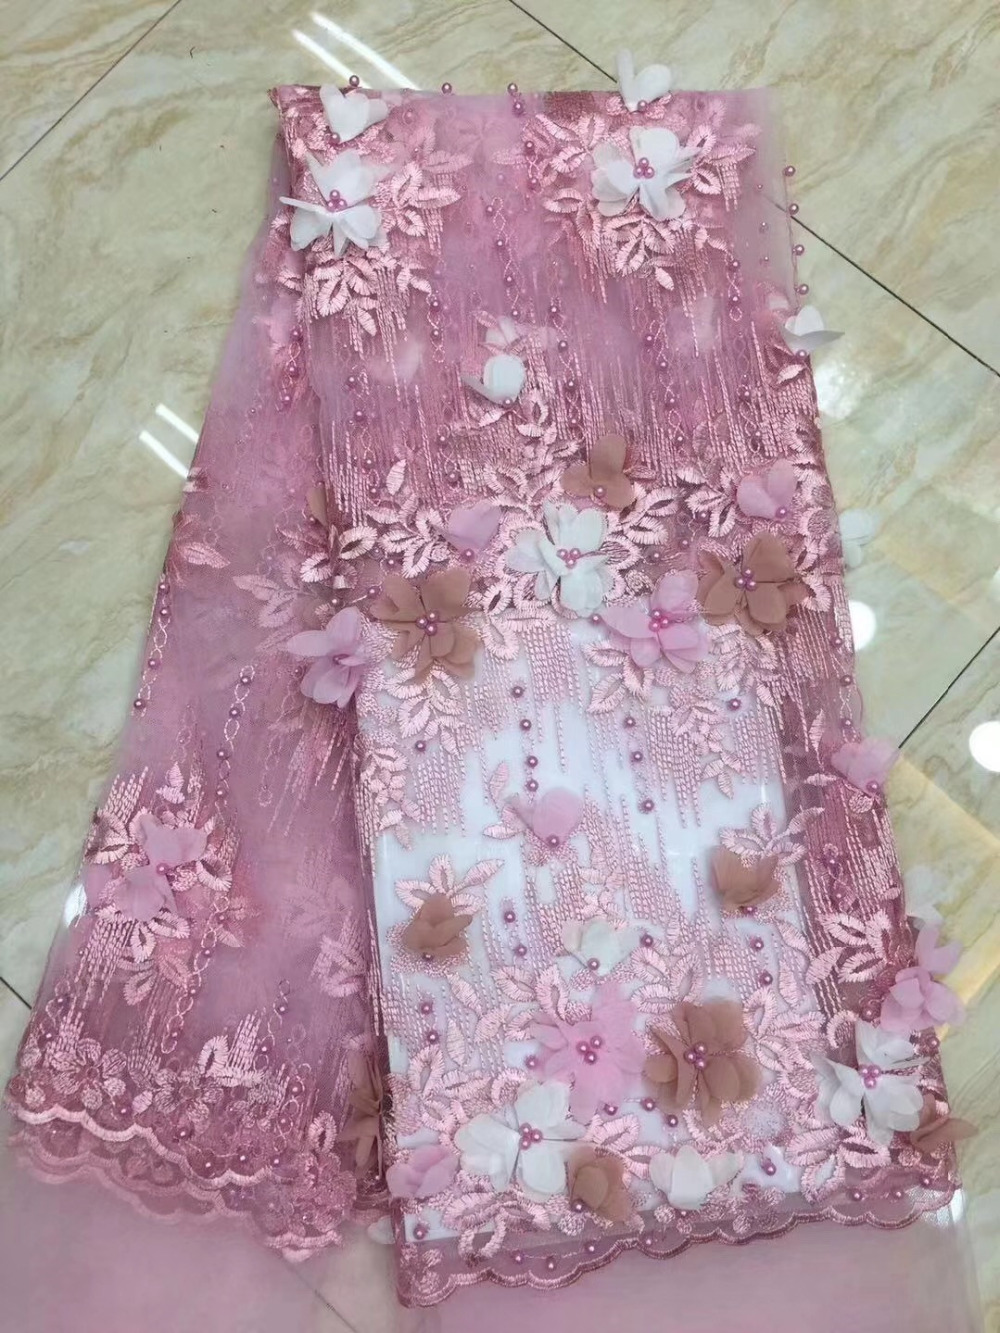 3D Applique Flower French Lace Fabric Pink Color Flowers 2019 Embroidery Net Lace With Handwork Beads African Lace Fabrics3D Applique Flower French Lace Fabric Pink Color Flowers 2019 Embroidery Net Lace With Handwork Beads African Lace Fabrics